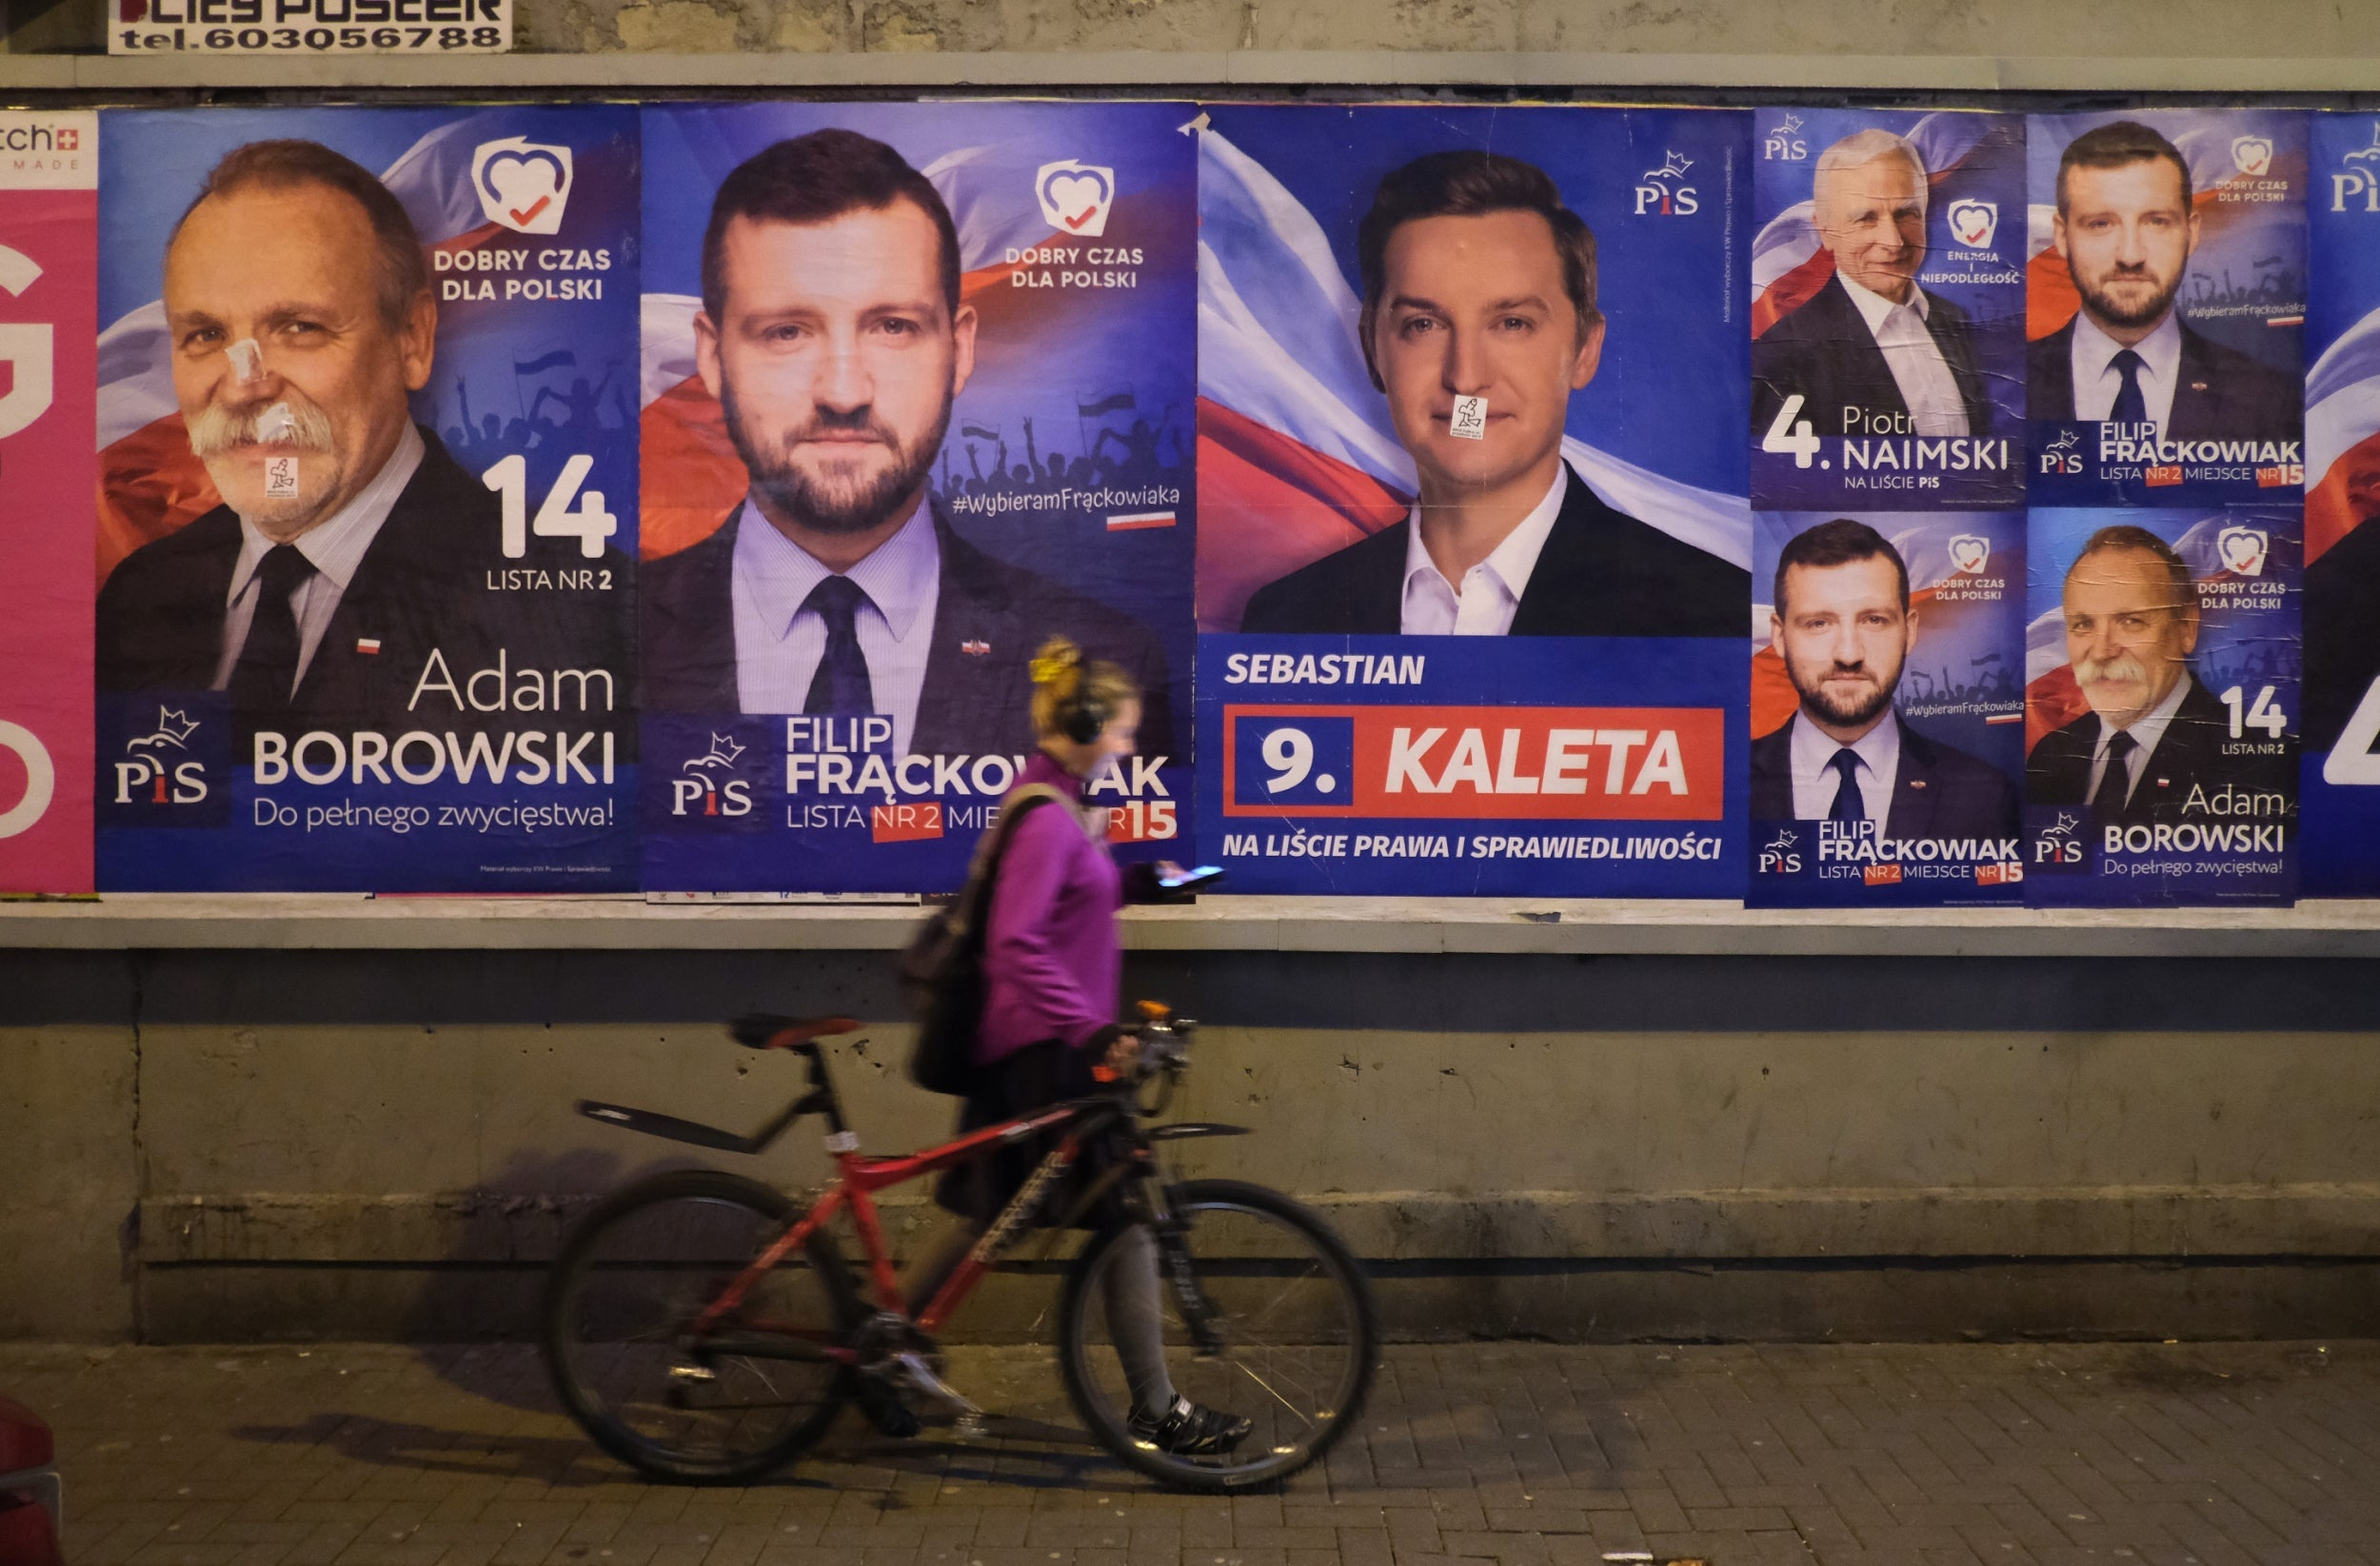 Poland election: Voters give verdict on four years of right-wing populists 3